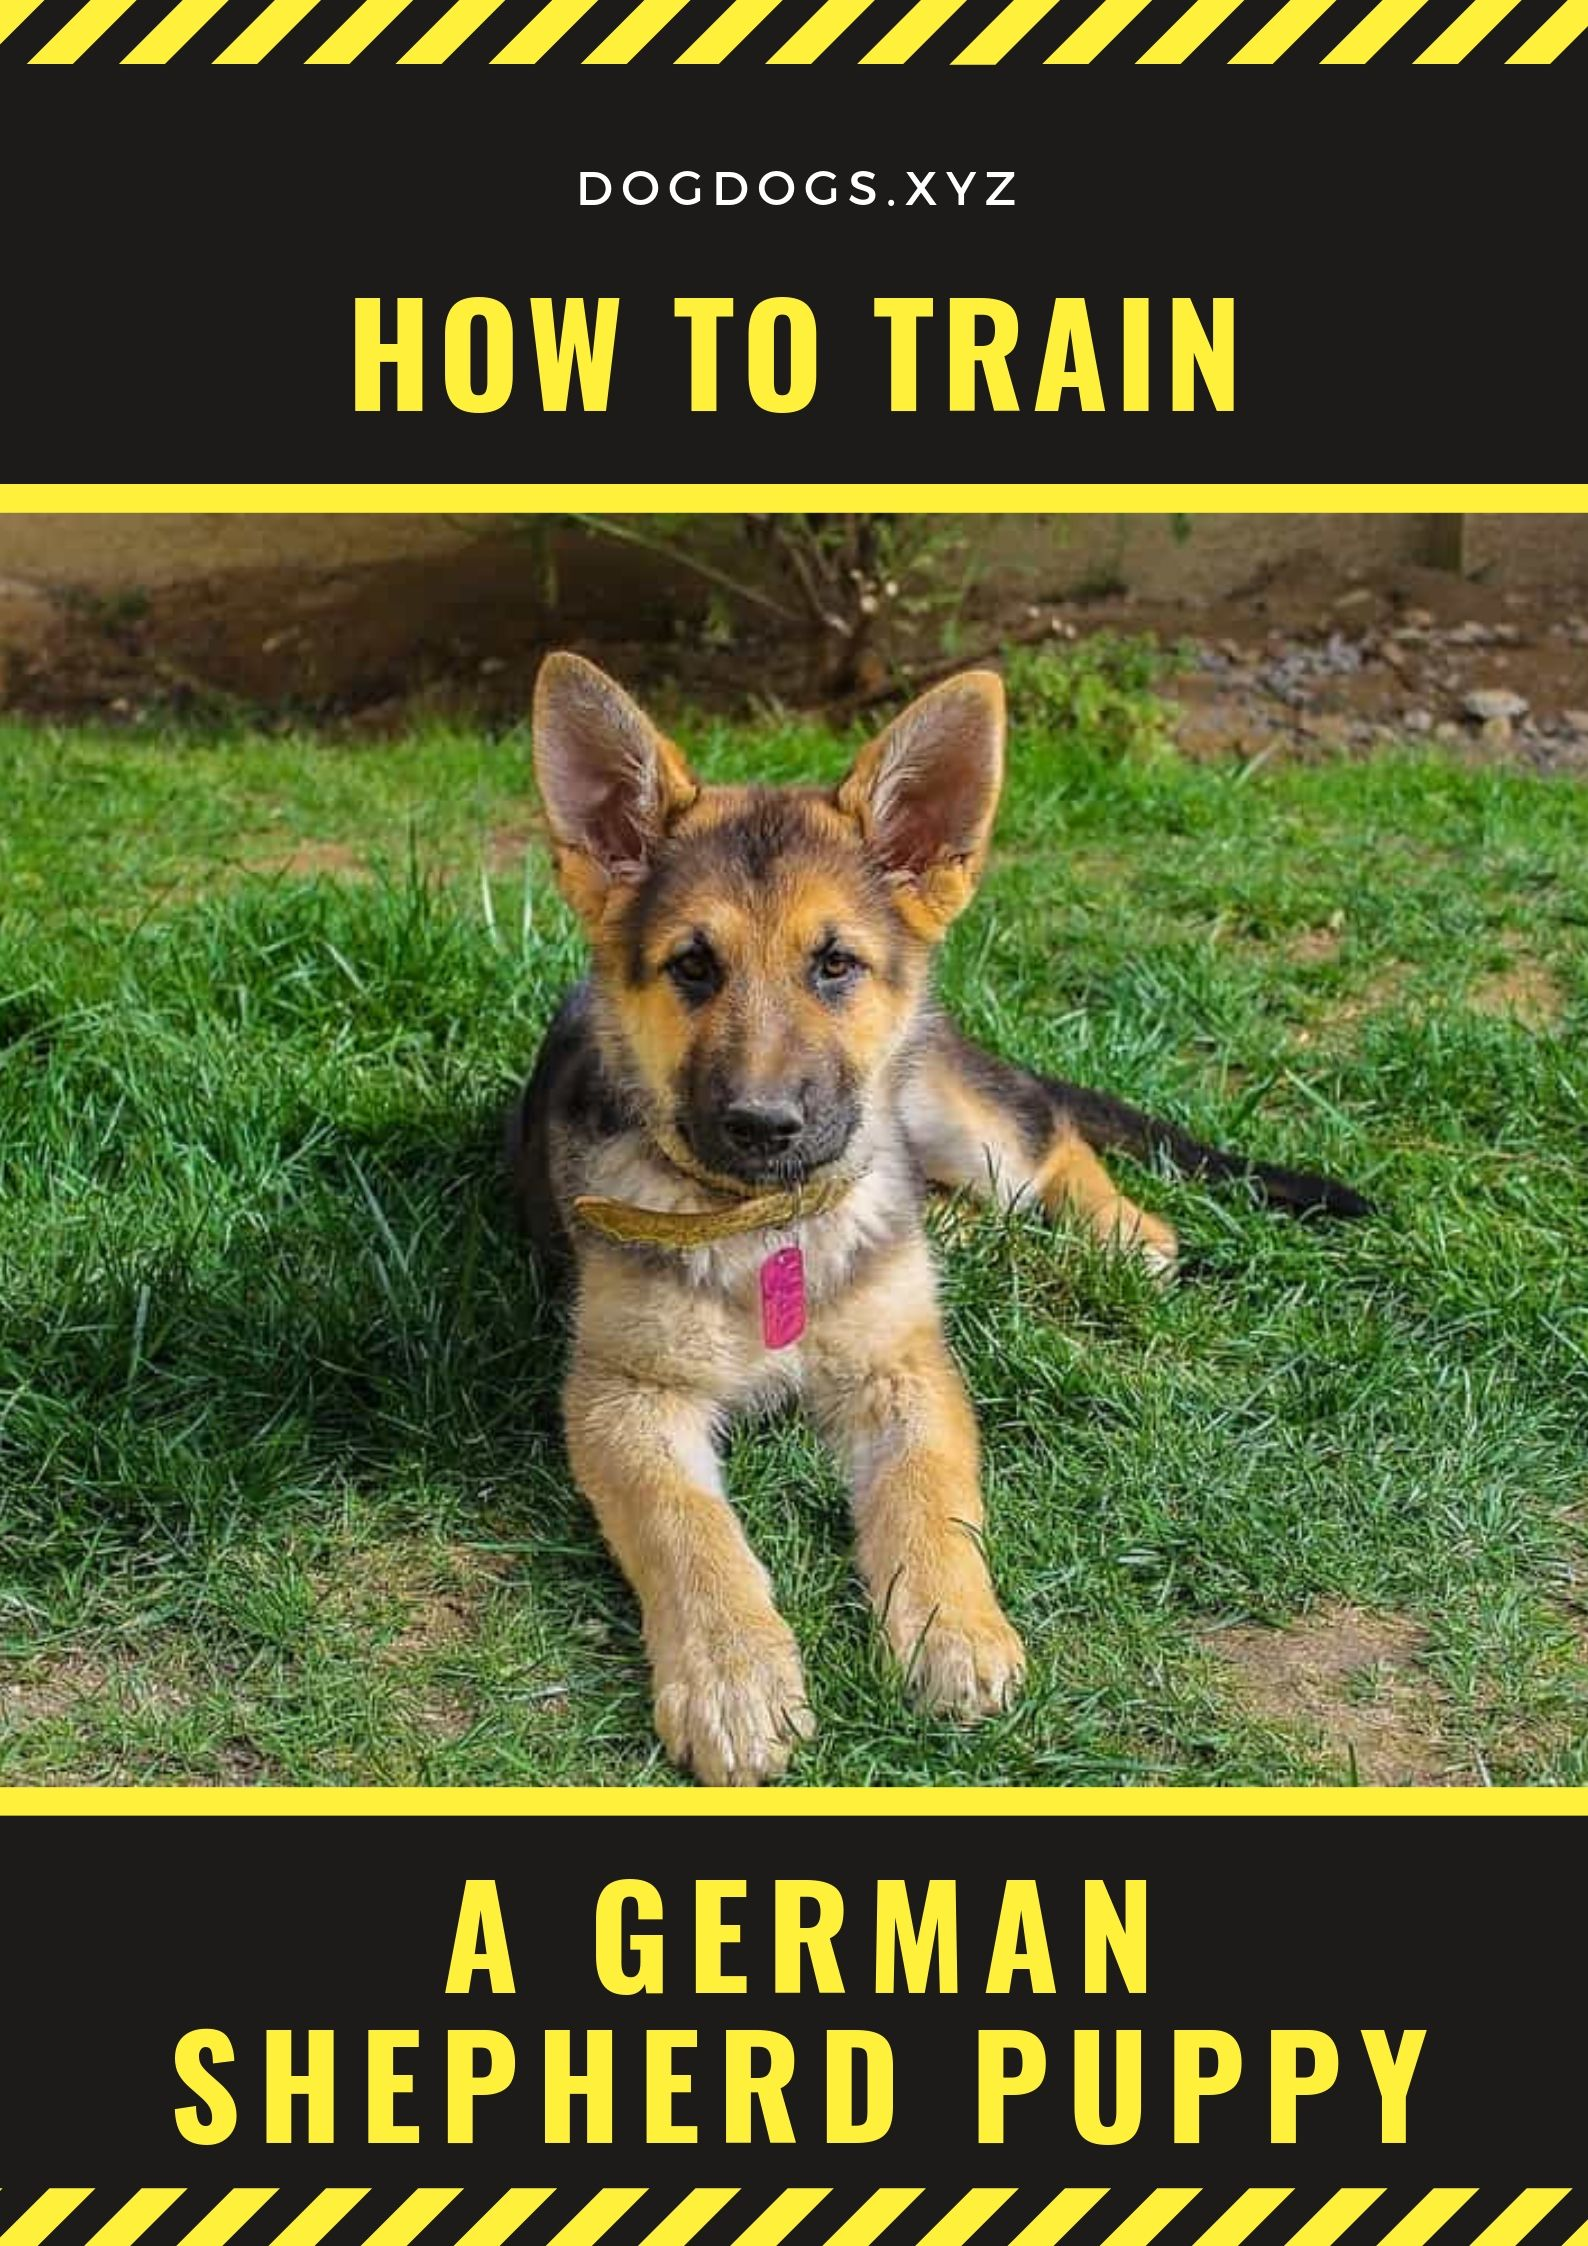 How To Train A German Shepherd Puppy Dogdogs German Shepherd Puppies Training German Shepherd Puppies Shepherd Puppies